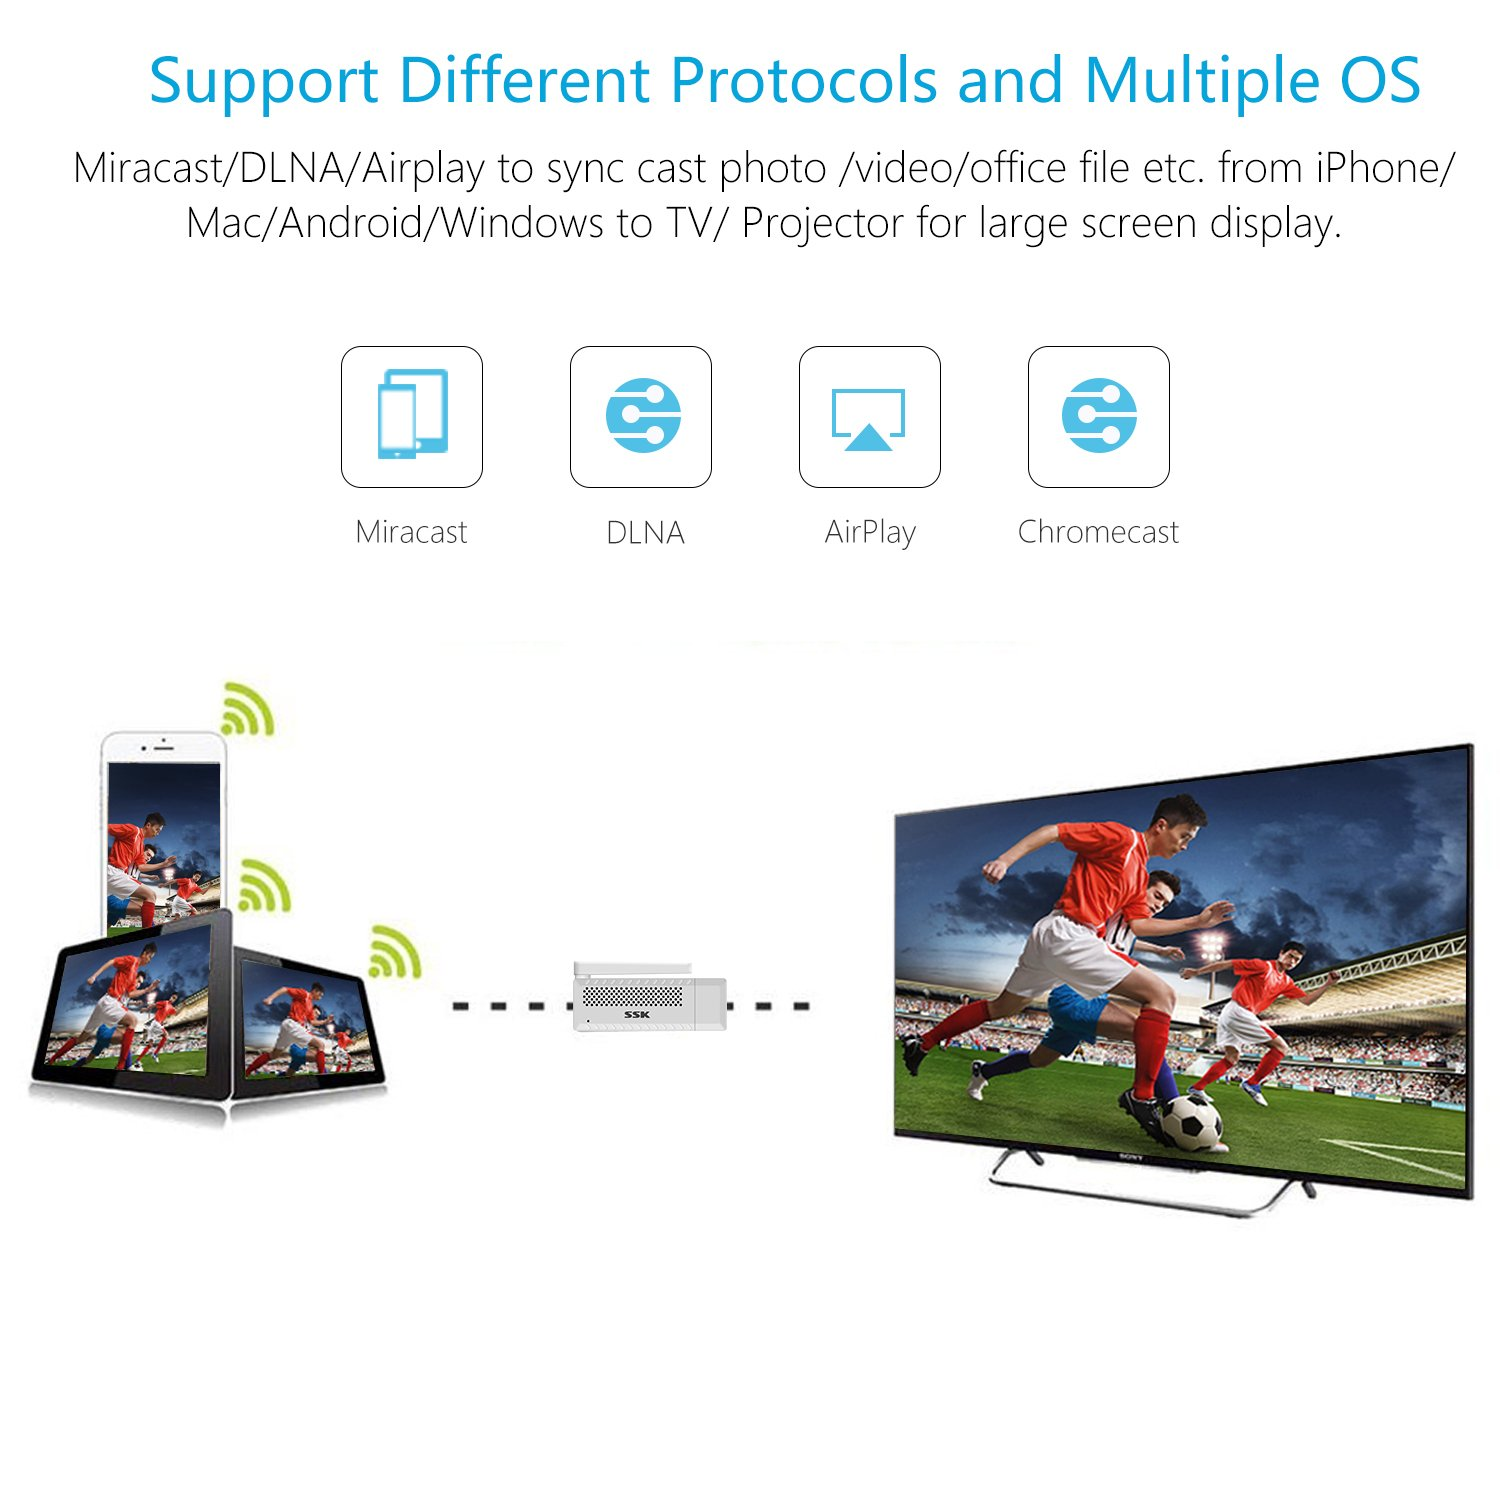 Miracast Dongle/Airplay Dongle/WiFi Display Dongle, 1080P 2.4G/5G Wireless Display Adapter Support HDMI and WIFI Cast Media, Image, PPT to TV, Projector, and Monitor from Android/iOS/Mac/Windows by ACELITE (Image #3)